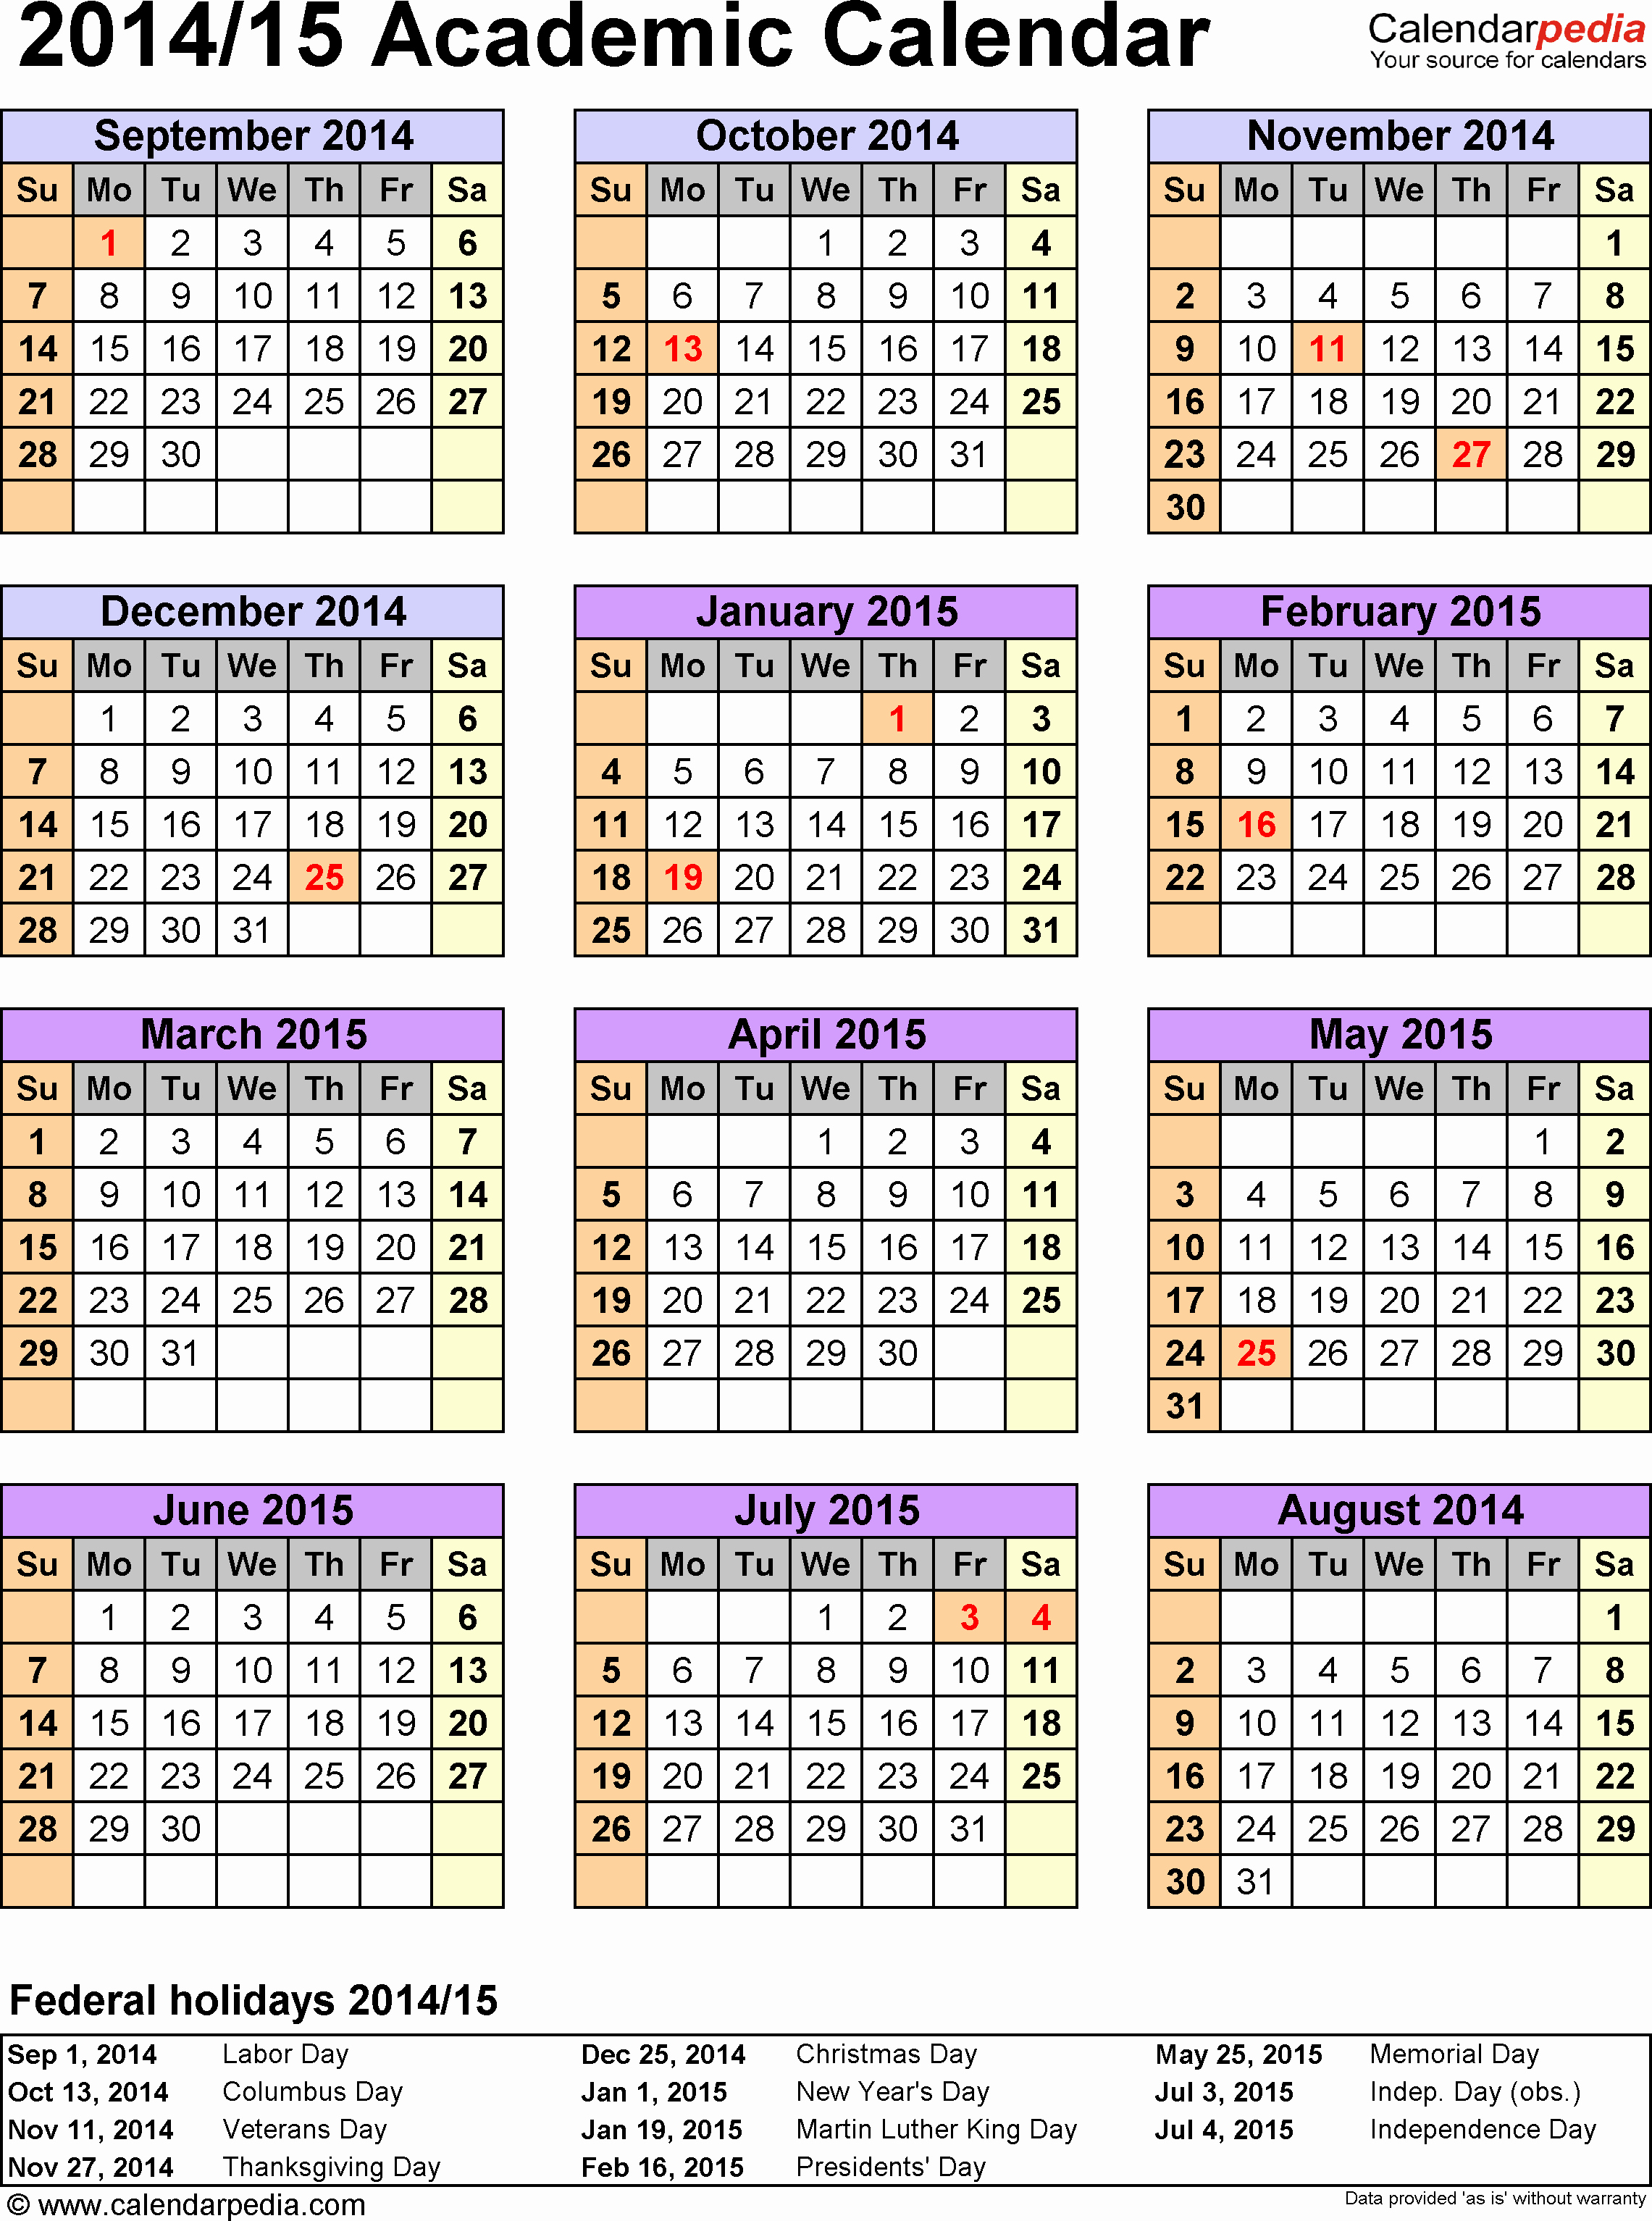 2015 Calendar with Holidays Excel Fresh Academic Calendars 2014 2015 as Free Printable Pdf Templates